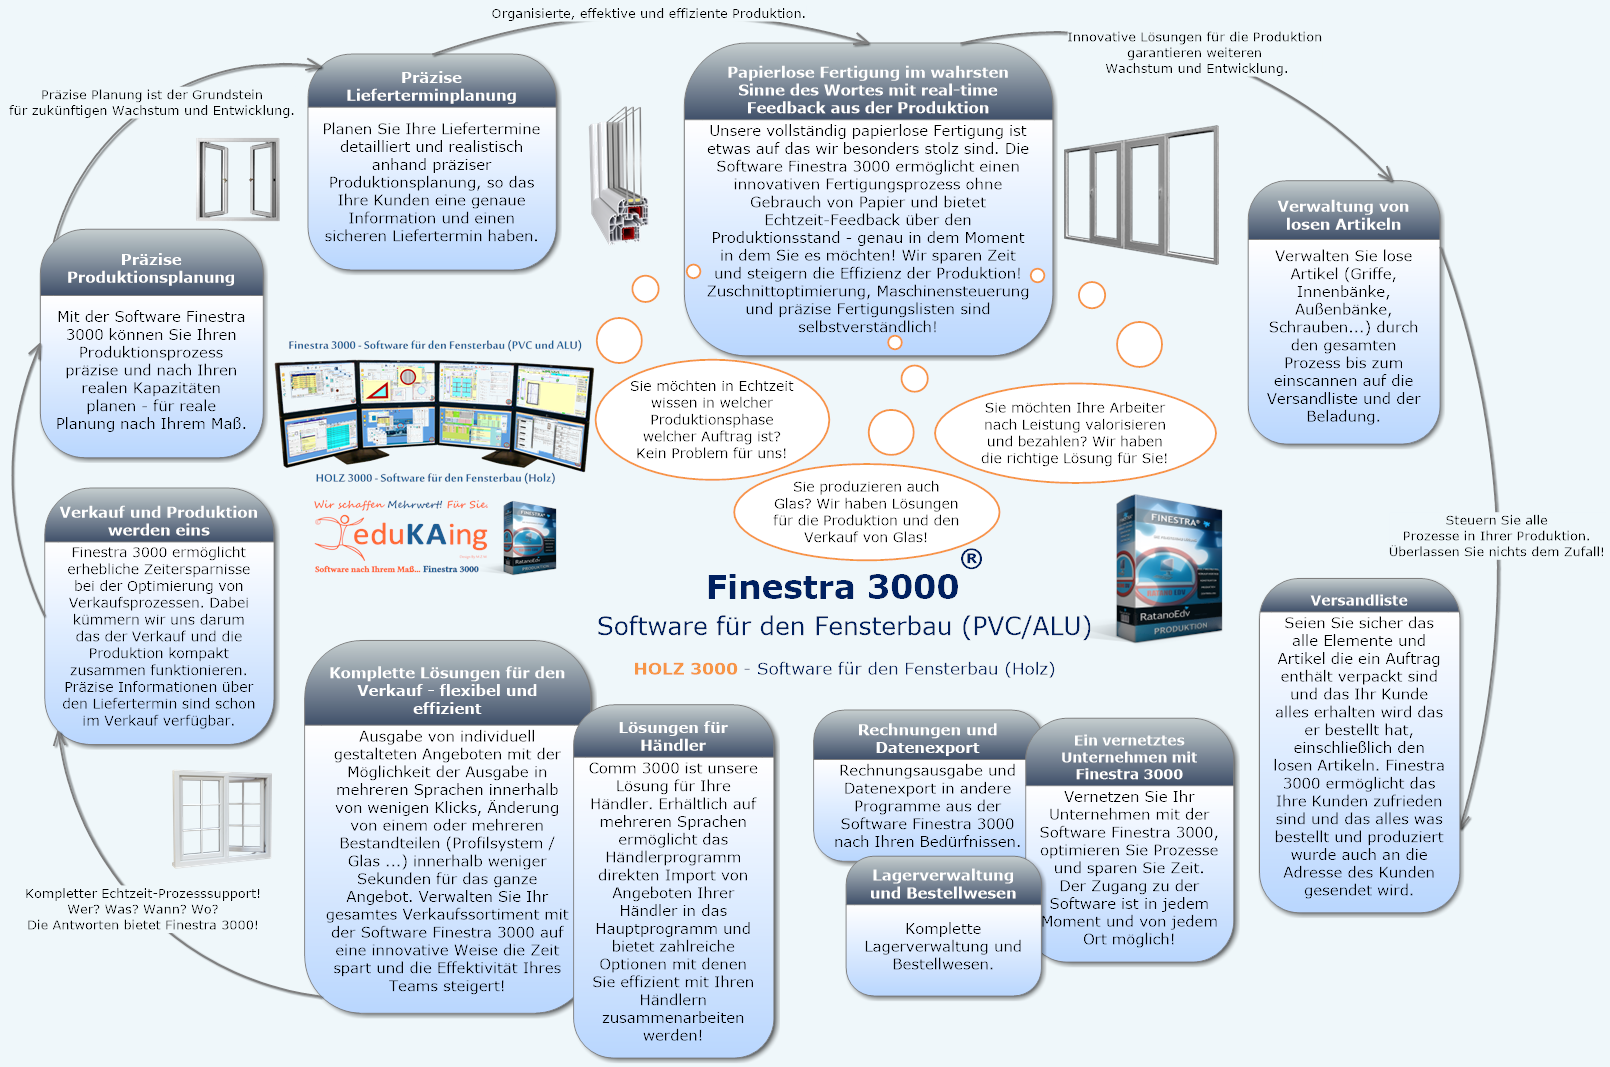 Fensterbausoftware Finestra 3000